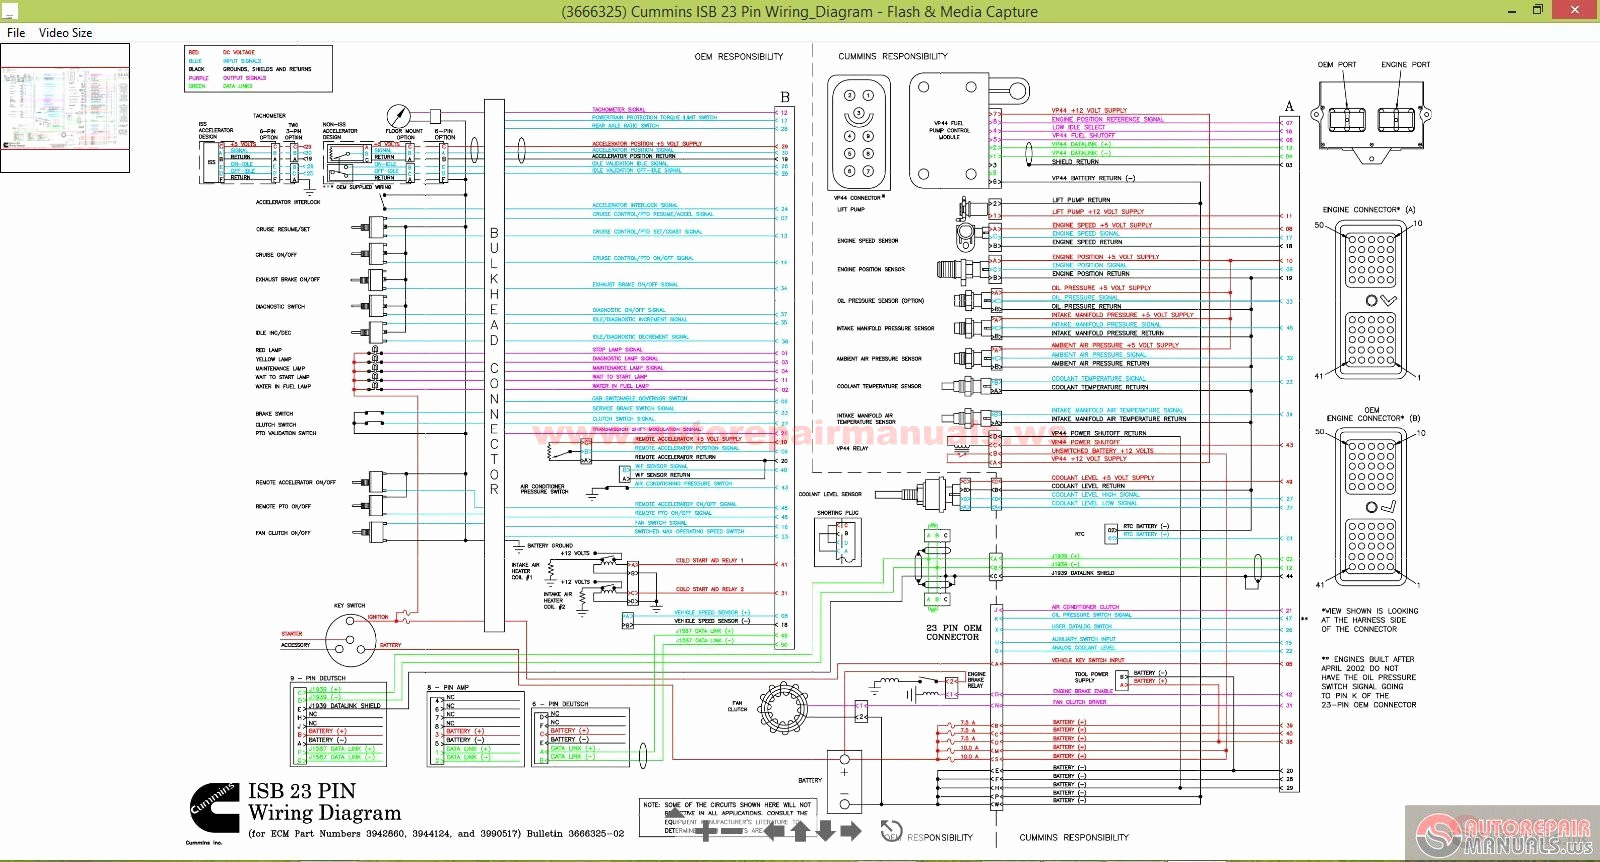 N14 Ecm Wiring Diagram - Wiring Diagram Center N Mins Celect Wiring Diagram on